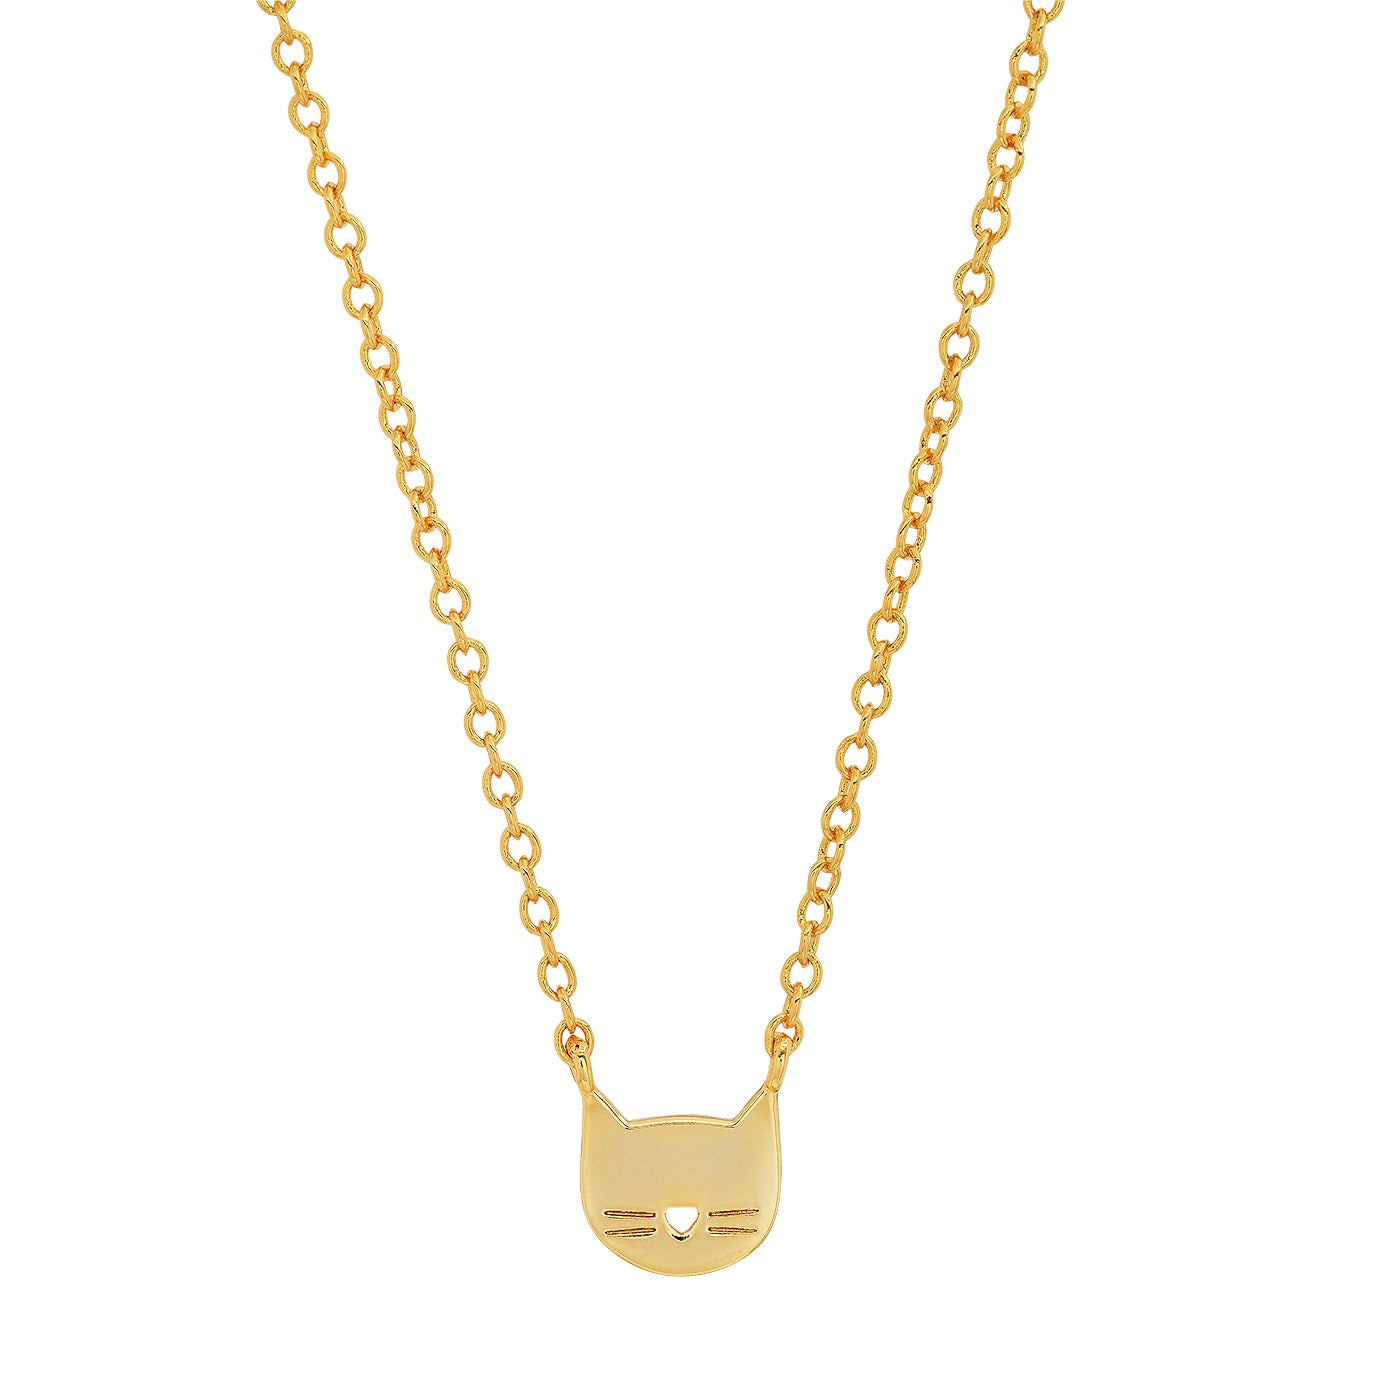 Whimsical Gold Cat Pendant Necklace